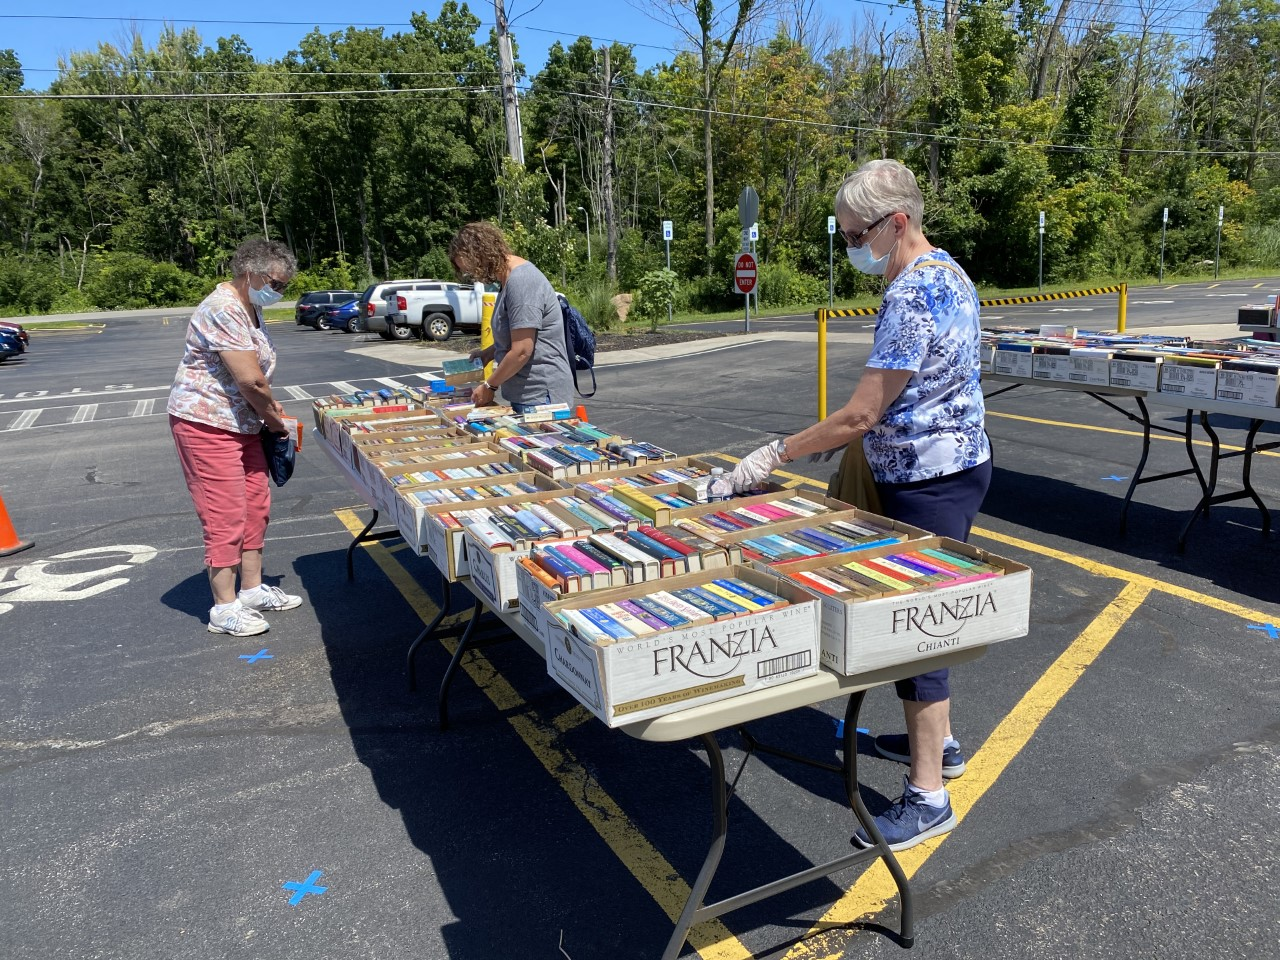 Webster Public Library Pop-Up Book Sale